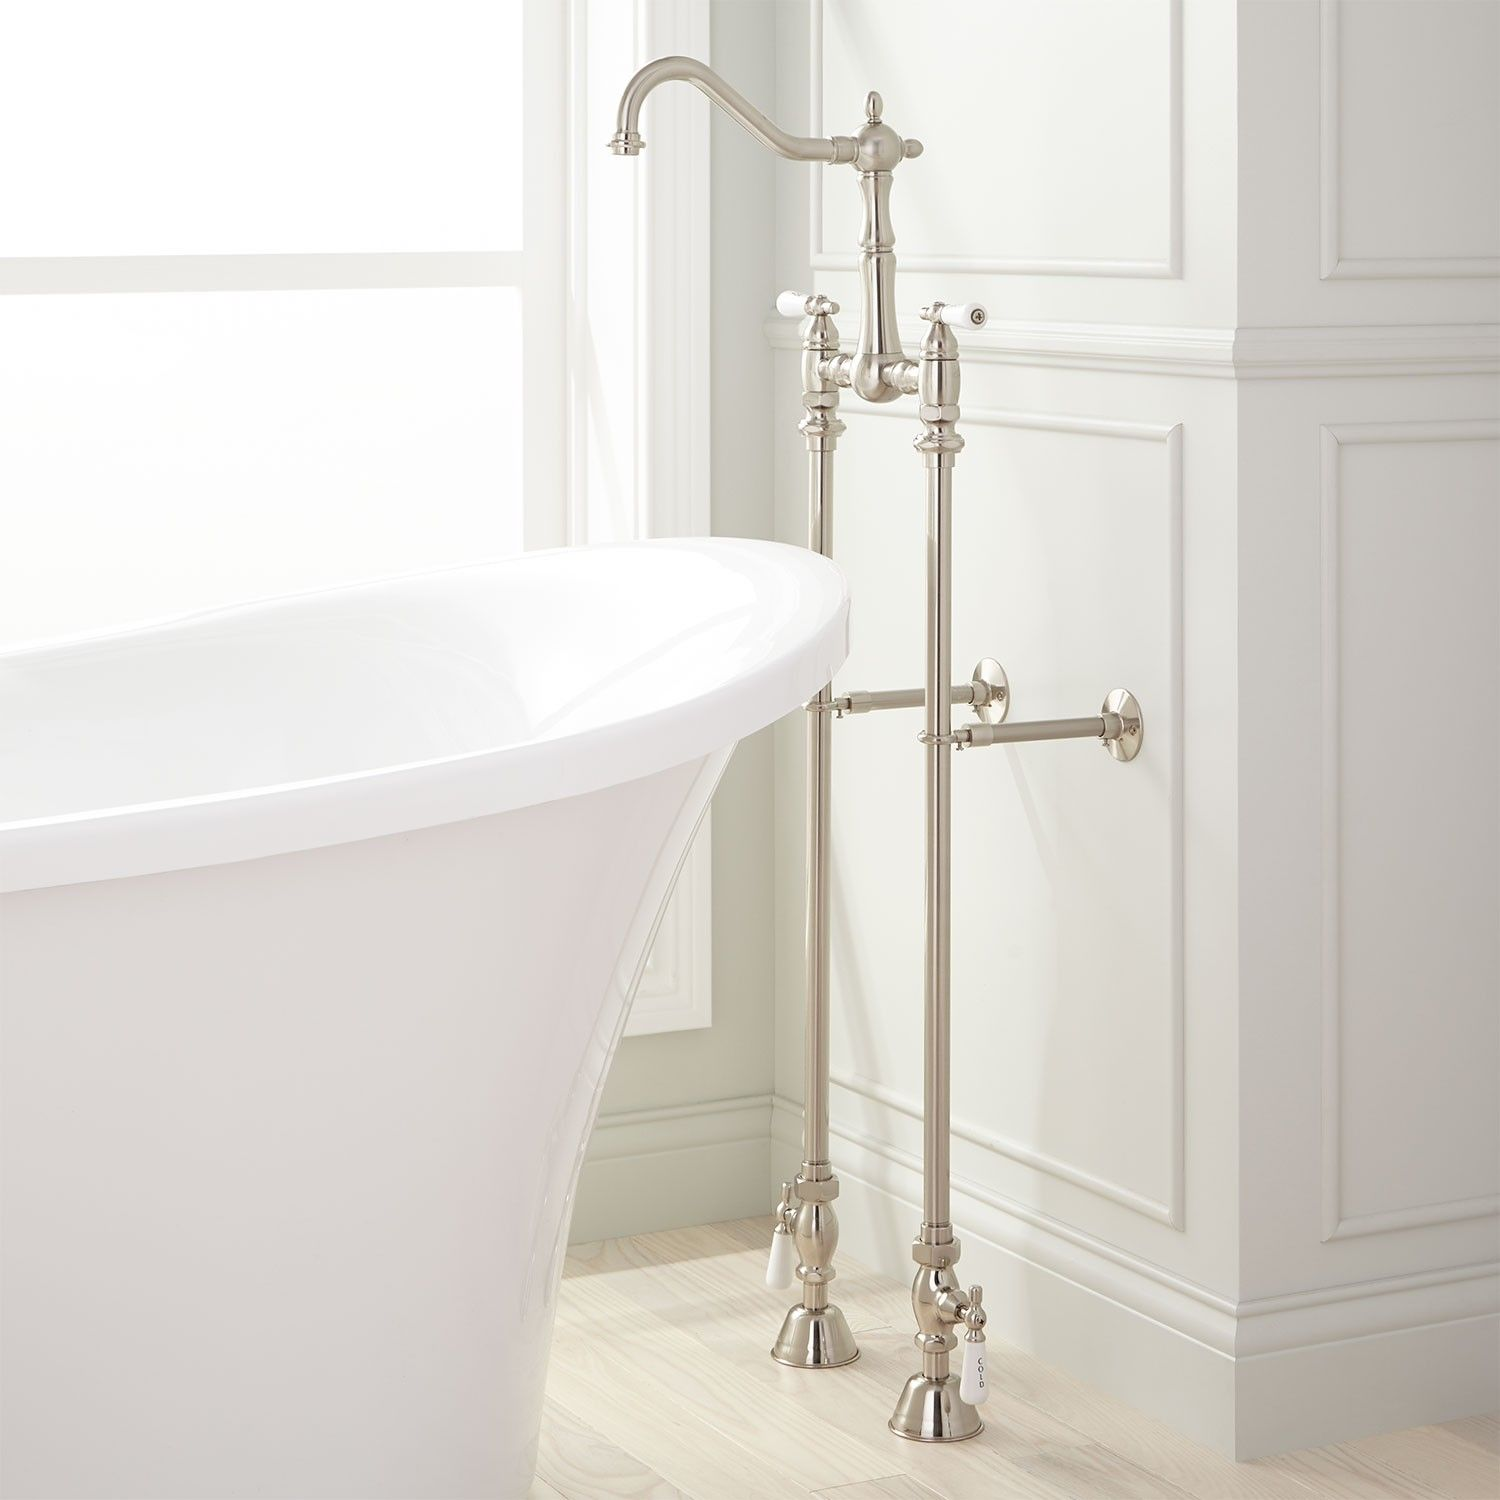 Victorian Freestanding Tub Faucet, Supplies and Shutoff Valves ...